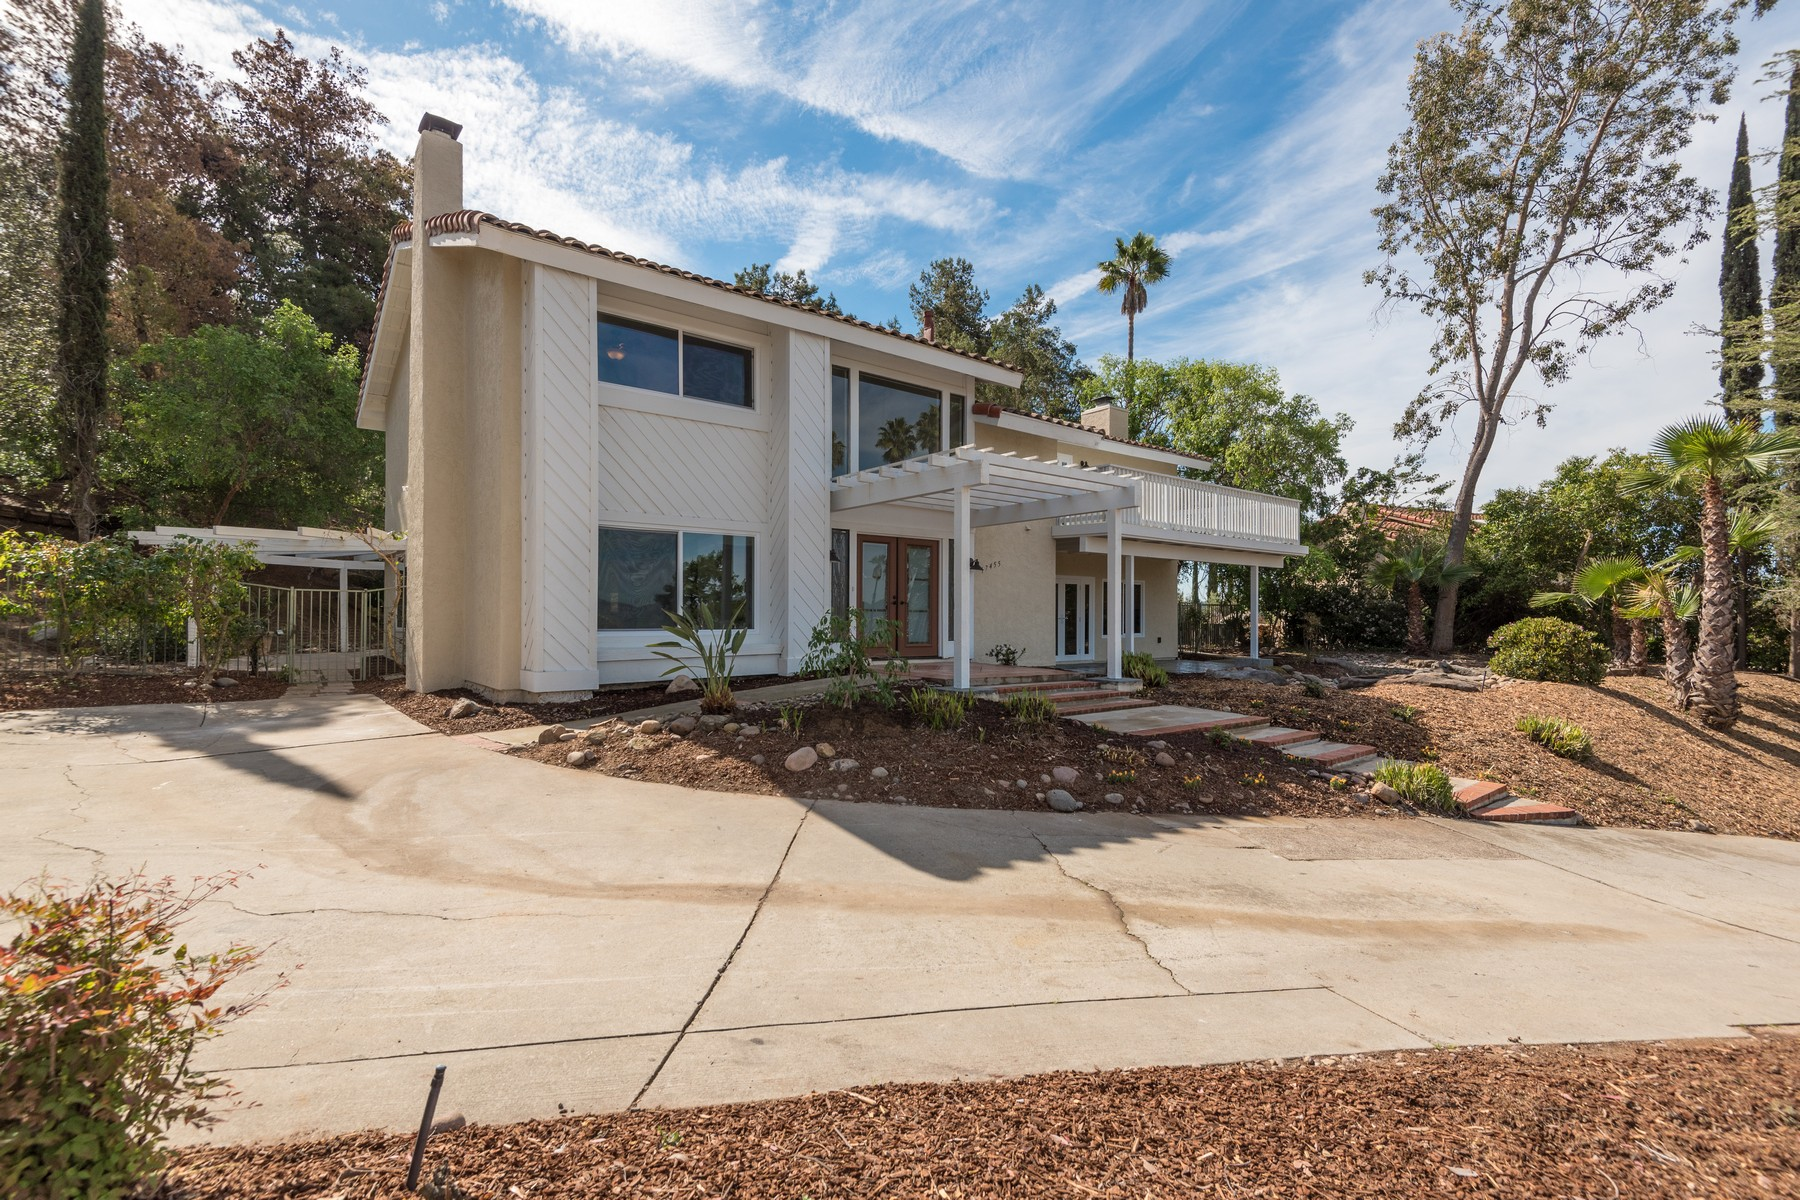 Single Family Home for Sale at 17455 Gibraltar Court 17455 Gibraltar Ct San Diego, California, 92128 United States